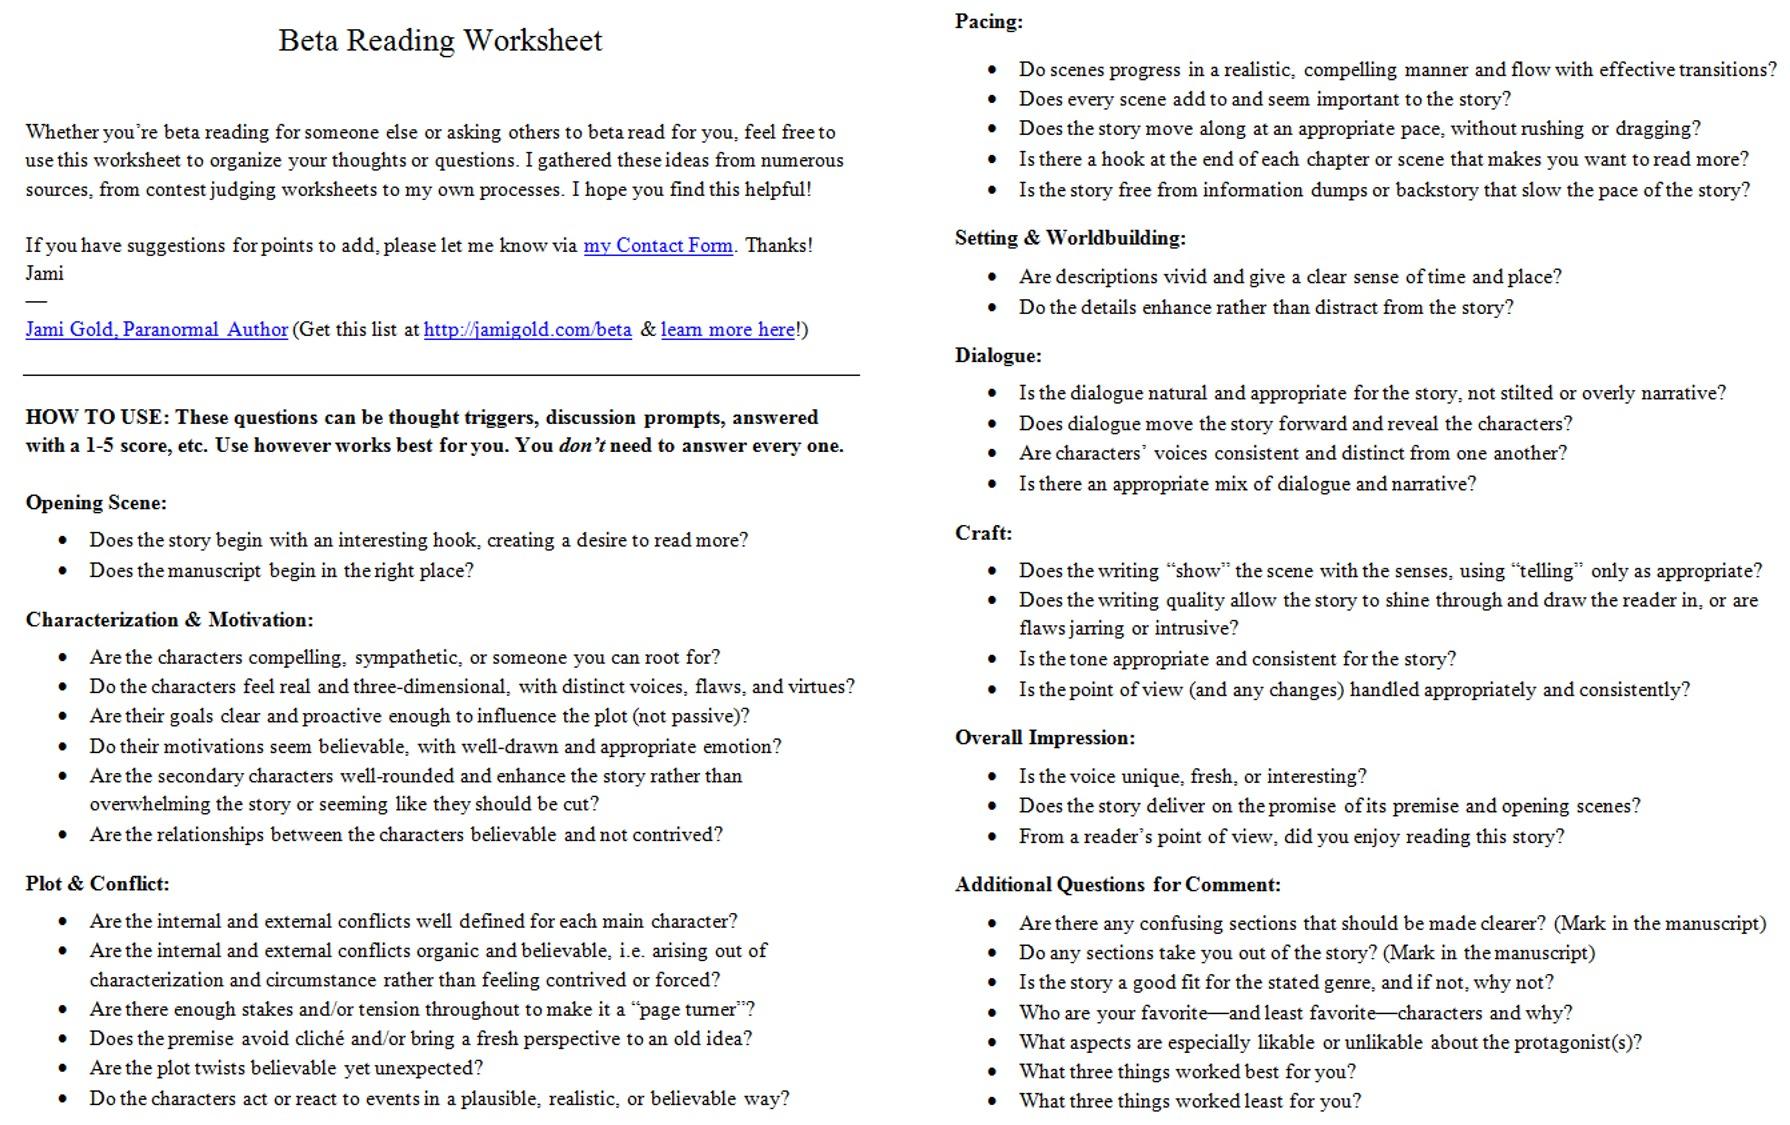 Aldiablosus  Mesmerizing Worksheets For Writers  Jami Gold Paranormal Author With Fascinating Screen Shot Of The Twopage Beta Reading Worksheet With Cute Making Tens Worksheets Also Take Away Worksheet In Addition Maths Colouring Worksheets And Decimal Number Lines Worksheet As Well As Fraction Free Worksheets Additionally Disney Printable Worksheets From Jamigoldcom With Aldiablosus  Fascinating Worksheets For Writers  Jami Gold Paranormal Author With Cute Screen Shot Of The Twopage Beta Reading Worksheet And Mesmerizing Making Tens Worksheets Also Take Away Worksheet In Addition Maths Colouring Worksheets From Jamigoldcom